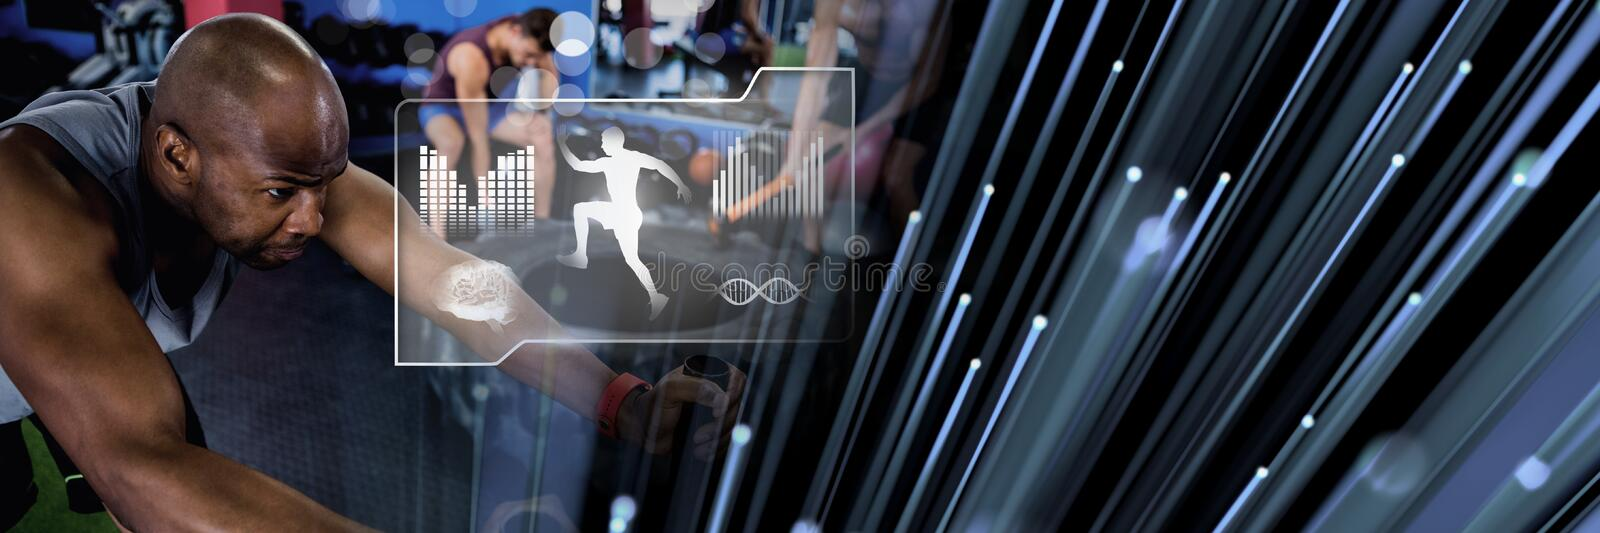 Athletic fit man in gym with health interface stock images